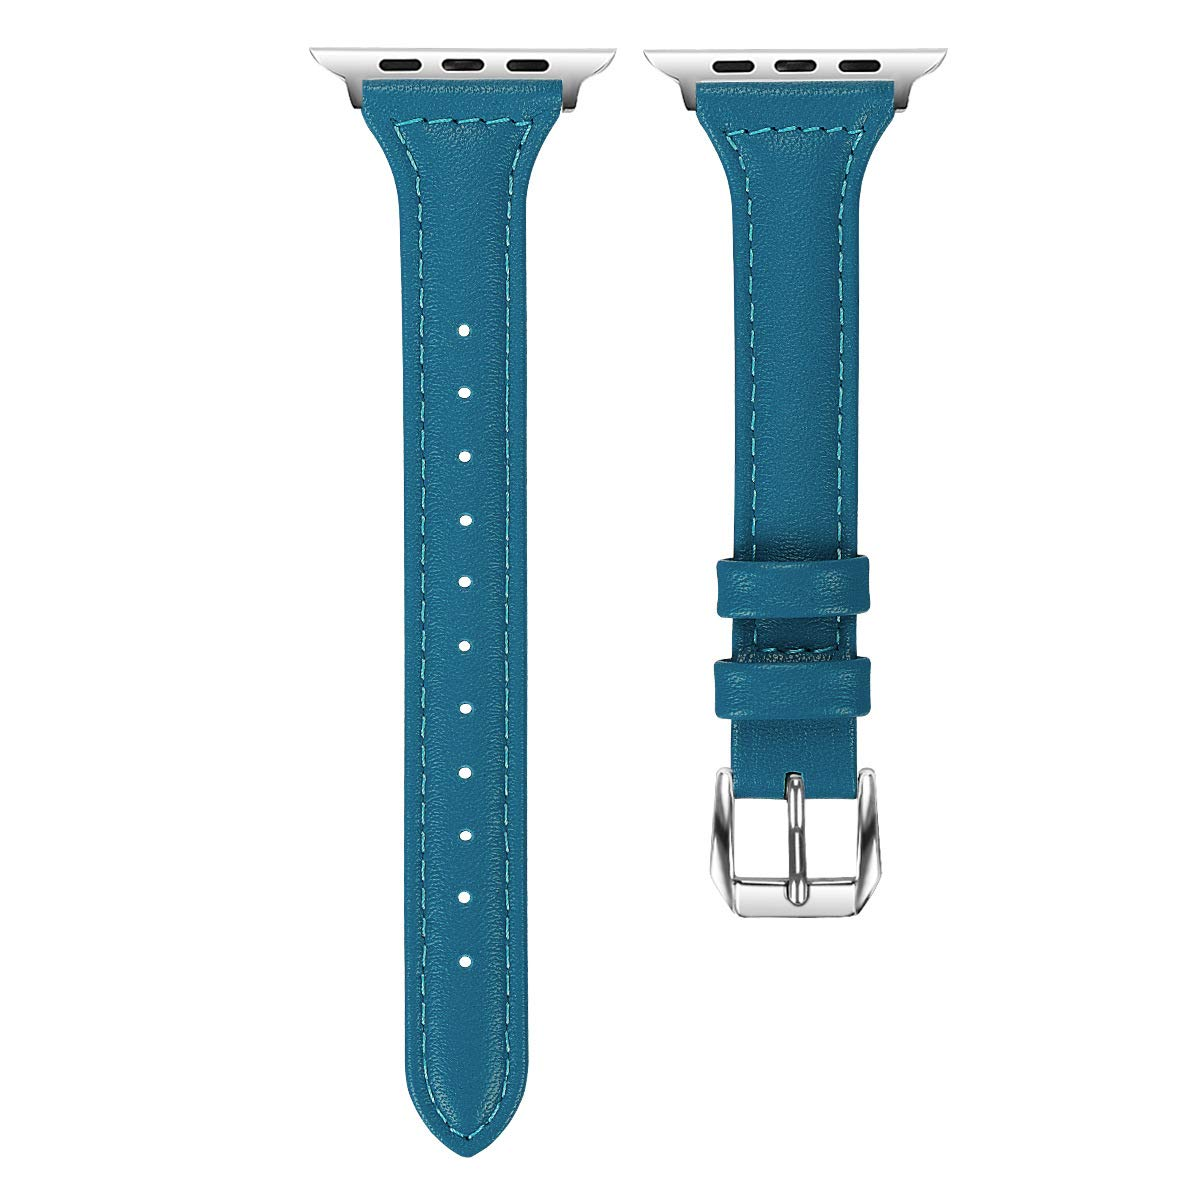 Urberry Apple watch band 42mm Leather iwatch strap Replacement Bands with Stainless Metal Clasp for Apple Watch Series 3 Series 2 Series 1 Sports Edition Women Men (Blue)